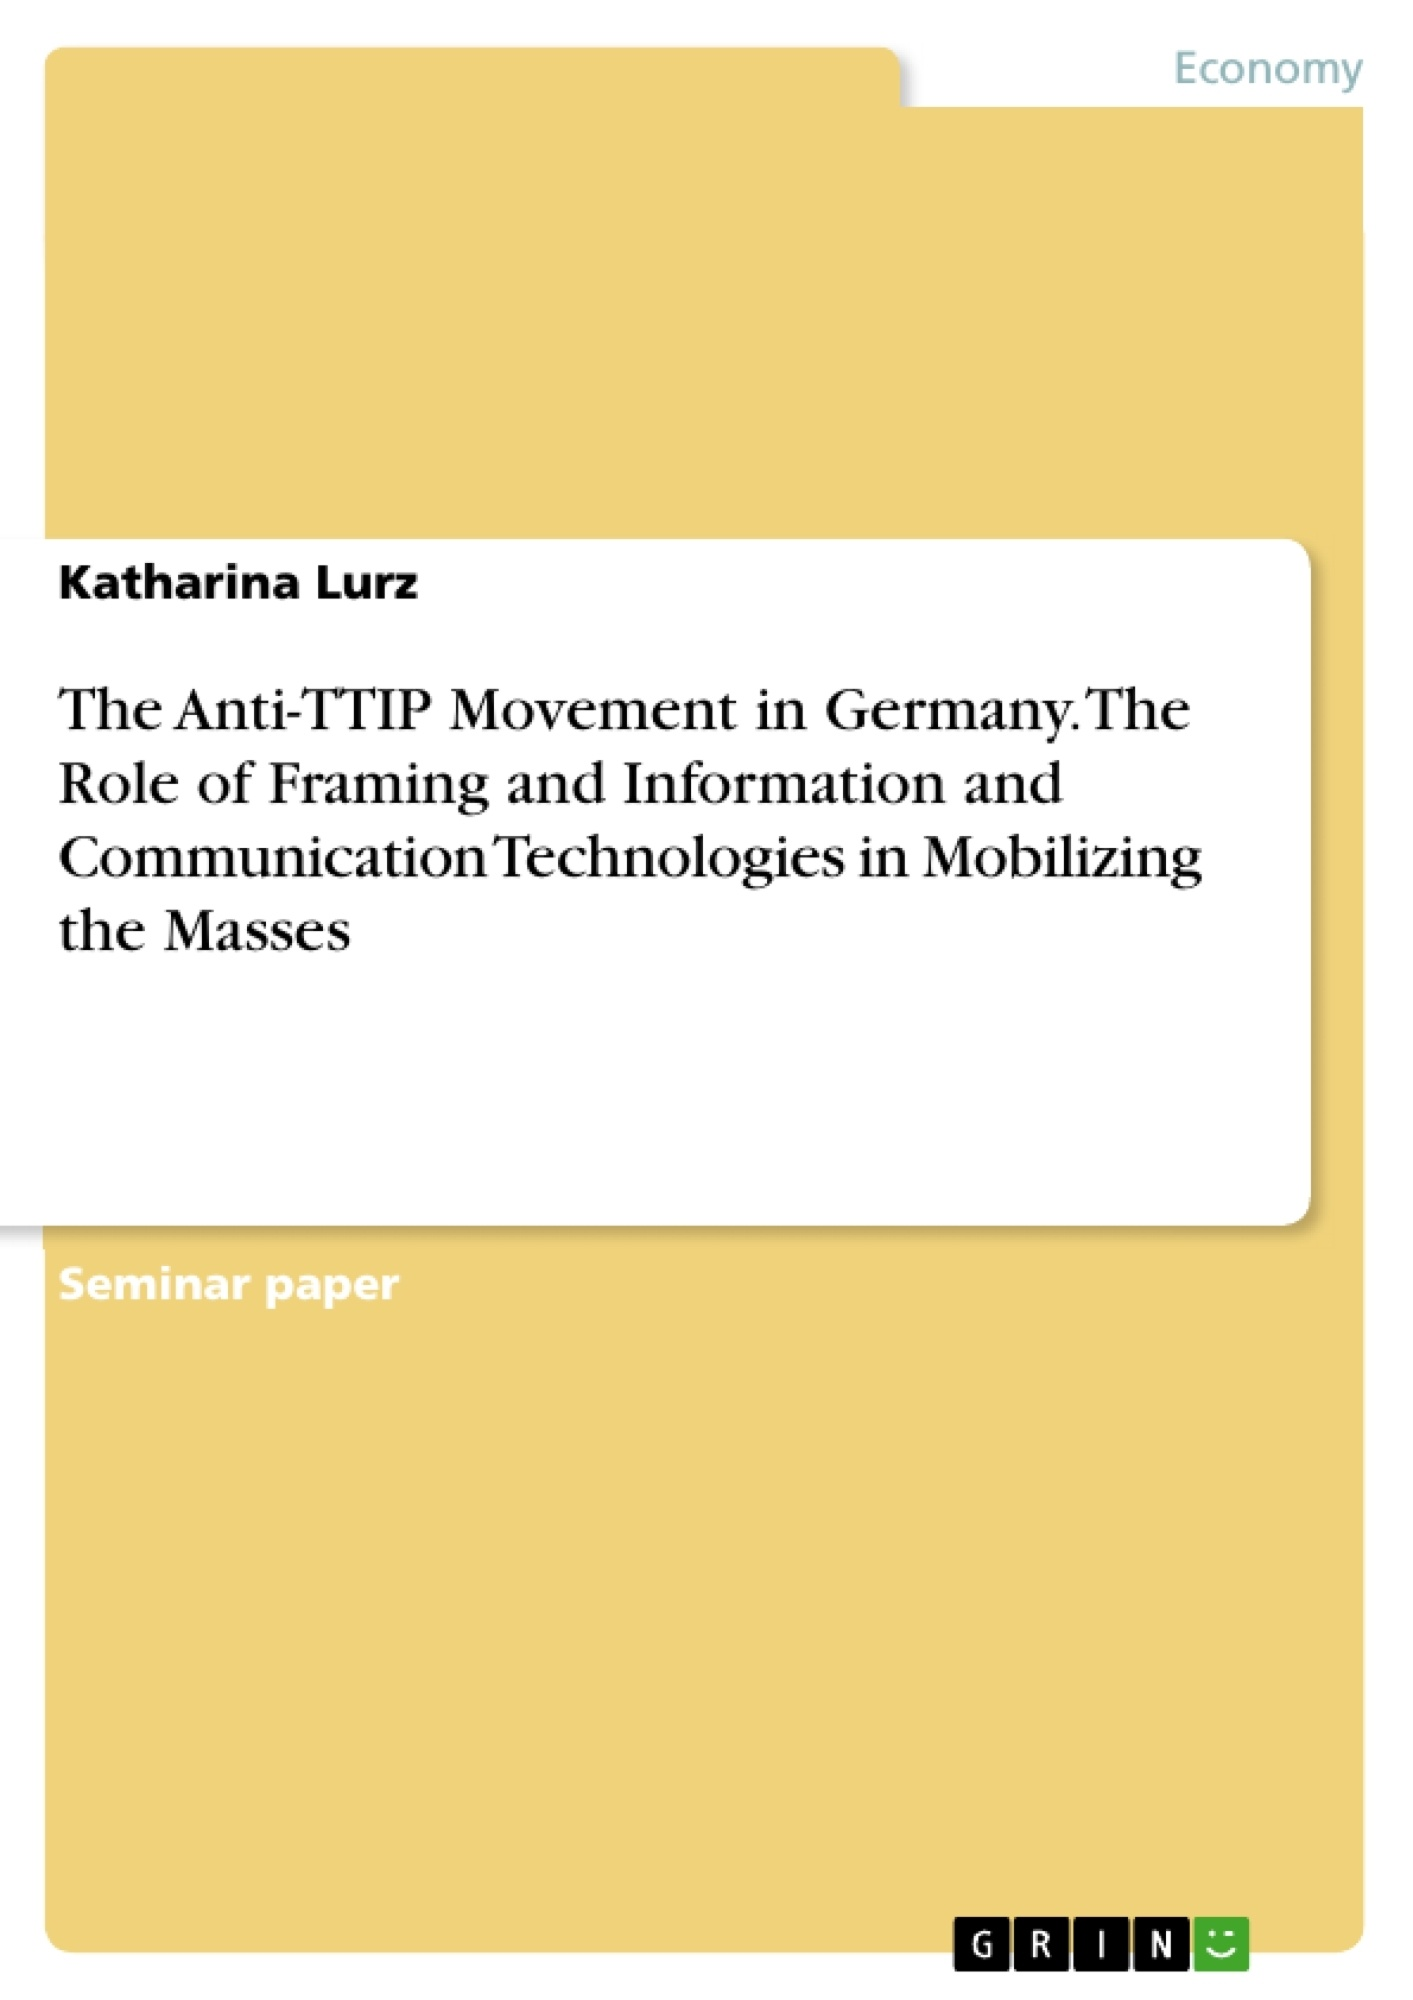 Title: The Anti-TTIP Movement in Germany. The Role of Framing and Information and Communication Technologies in Mobilizing the Masses